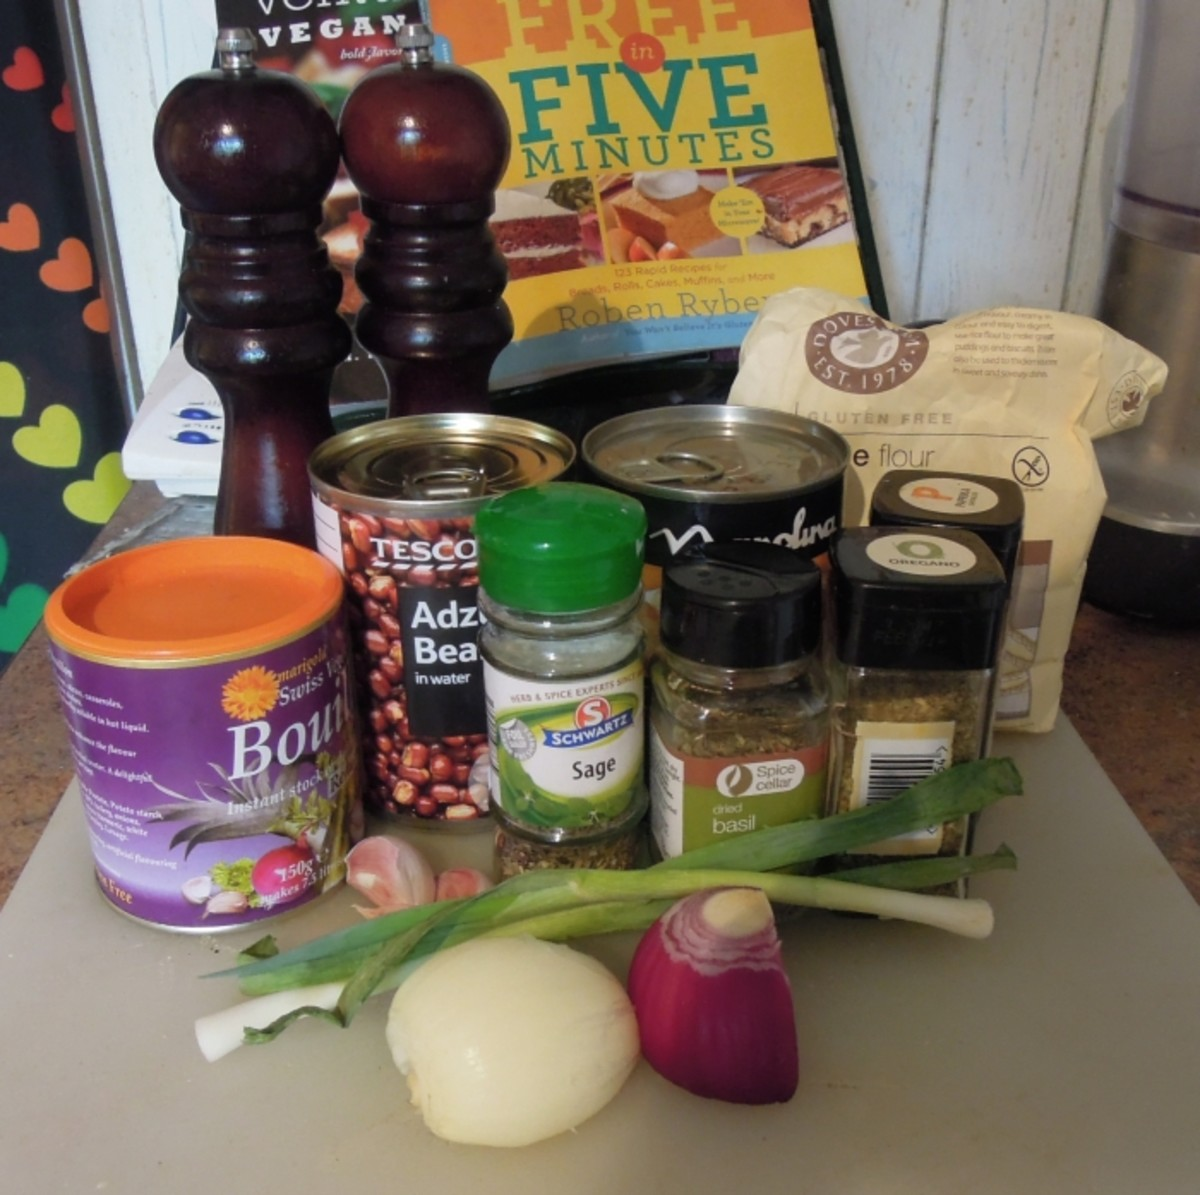 Ingredients for vegan sausages. These sausages are made using beans and are suitable for a range of allergy friendly diets.